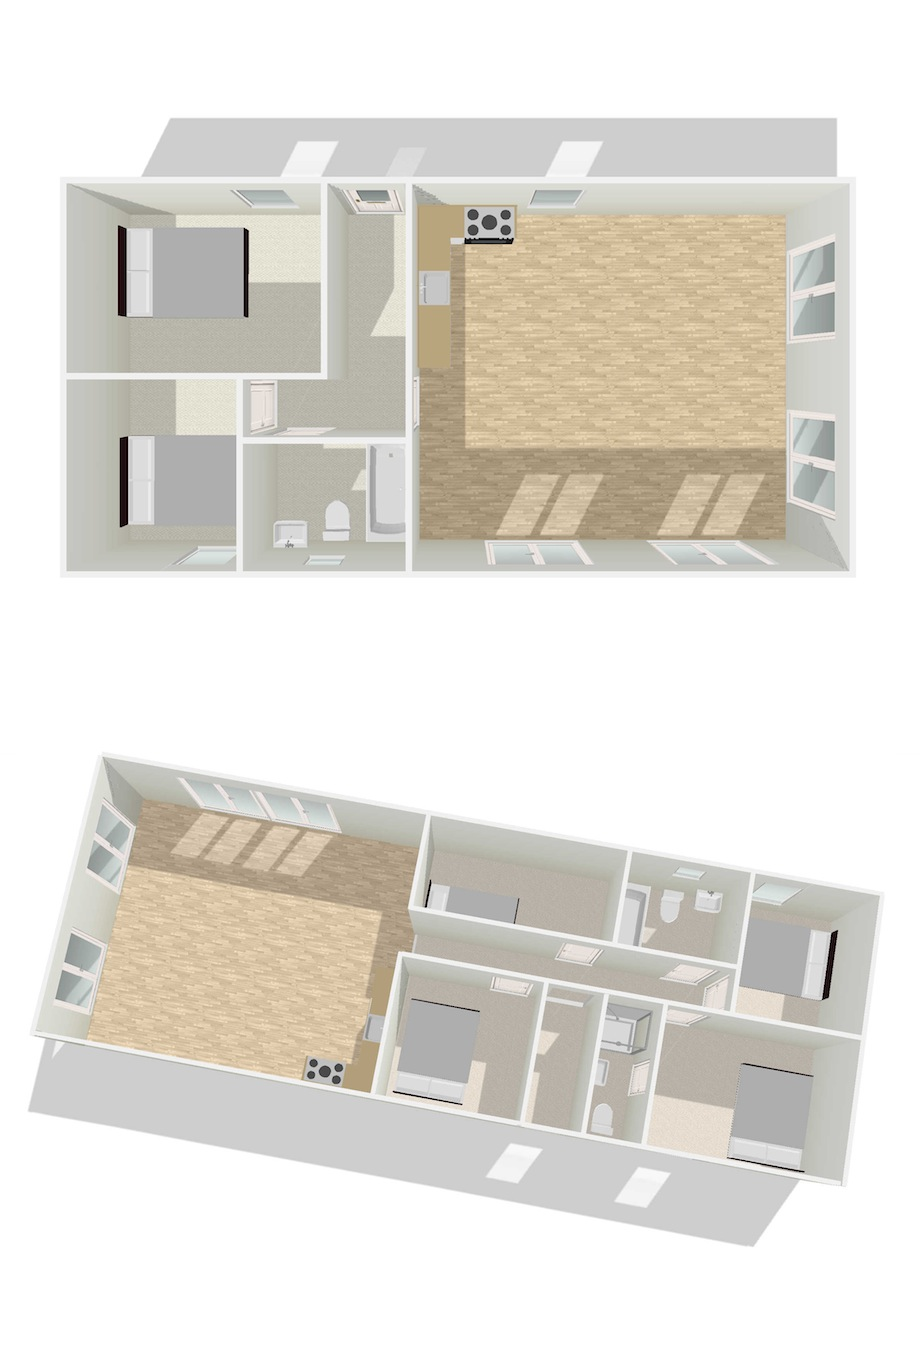 Mobile-Home-Floor-Plans-3d-p1